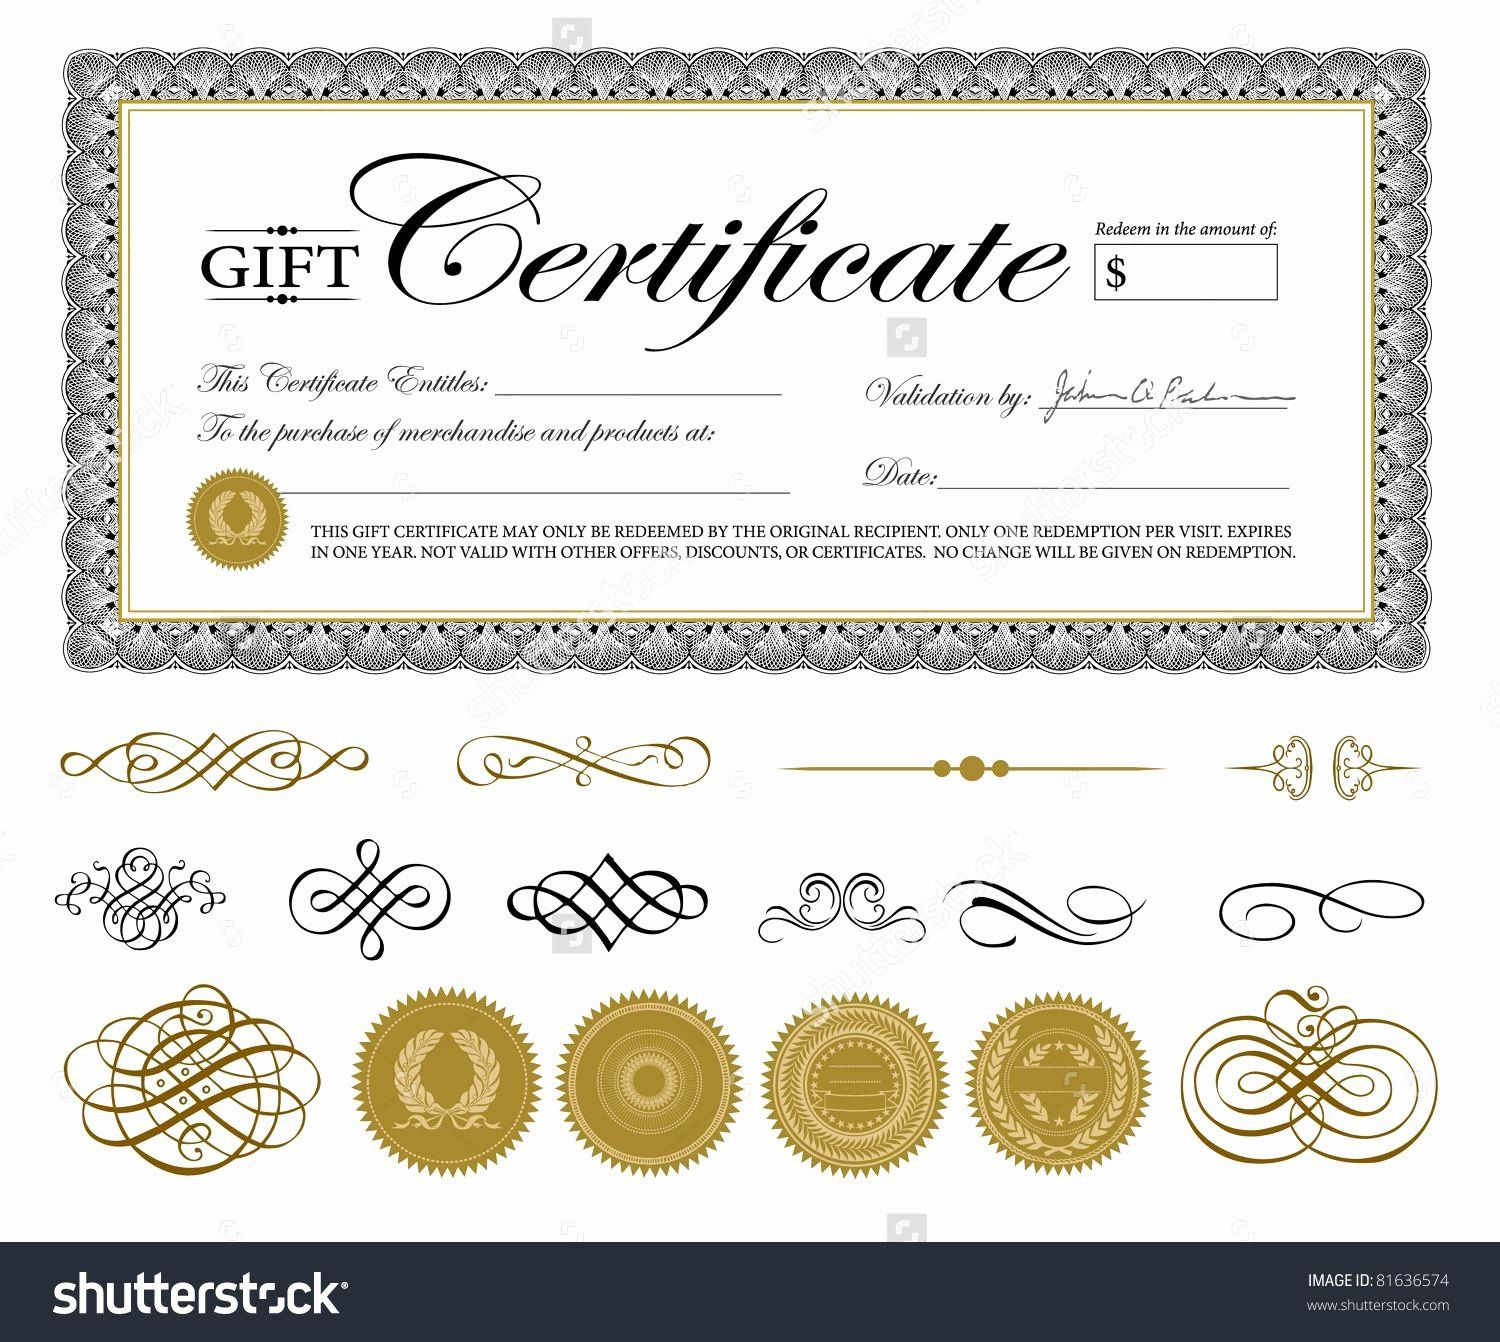 Gftlz Gift Certificate Template Download Lovely 56 Gift Certificate Templat Gift Certificate Template Word Printable Gift Certificate Gift Certificate Template